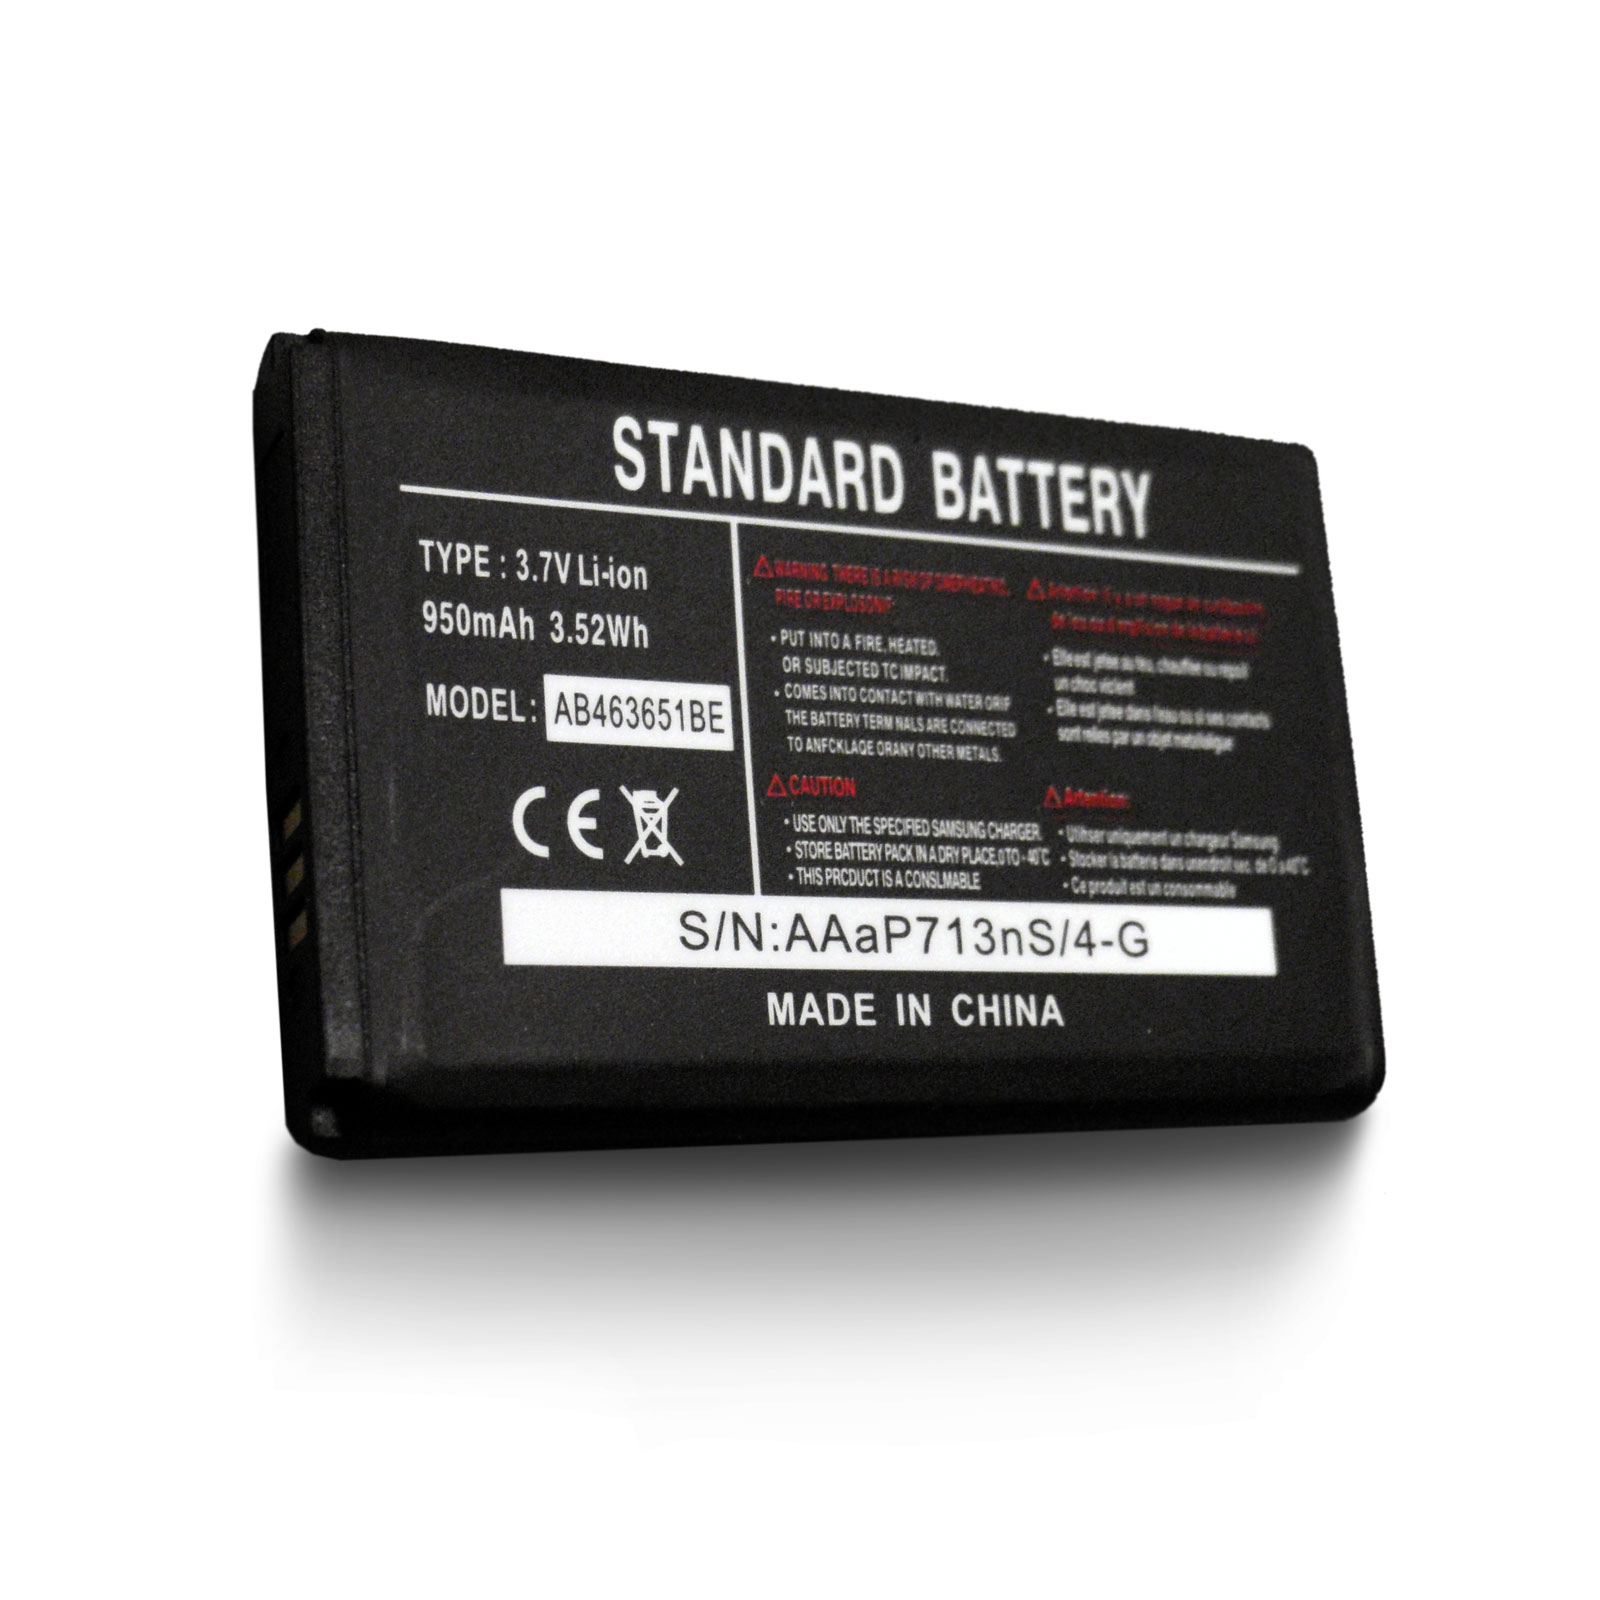 AmeriMax New Mobile Cell Phone Battery for Samsung TracFone SCH-R451C Messager SPH-M330 SPH-M630 SPH-M550 Sprint at Sears.com